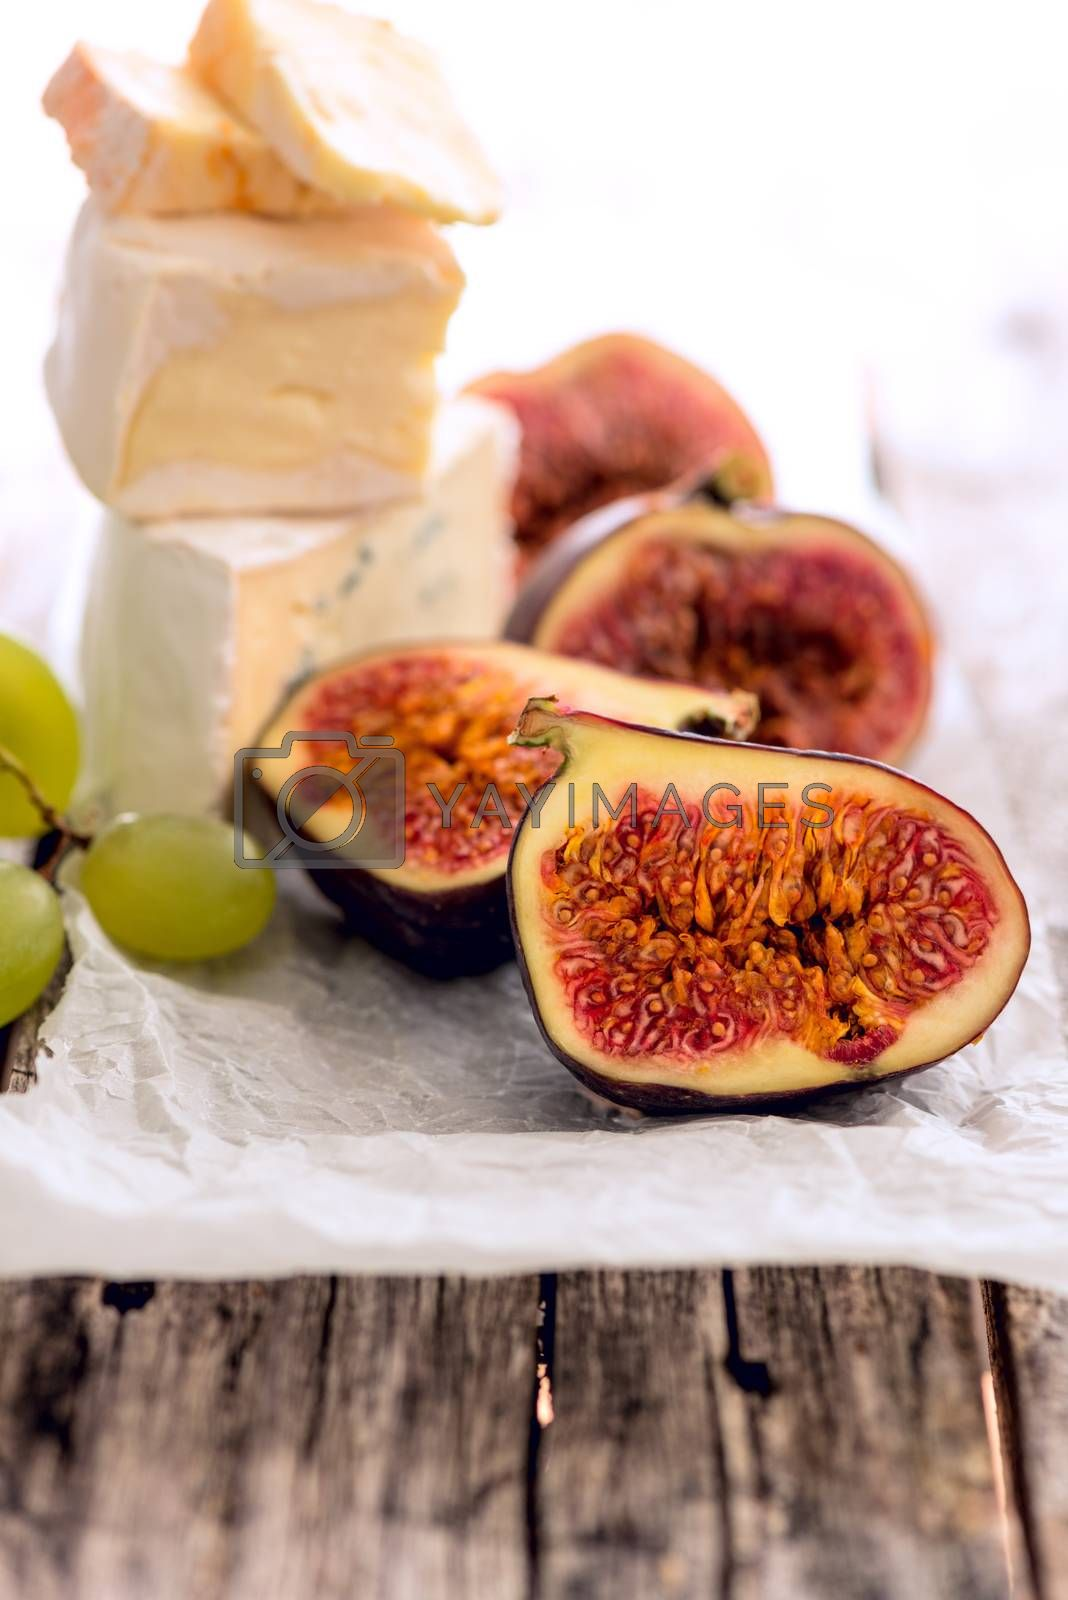 Cheese figs grapes by Nanisimova